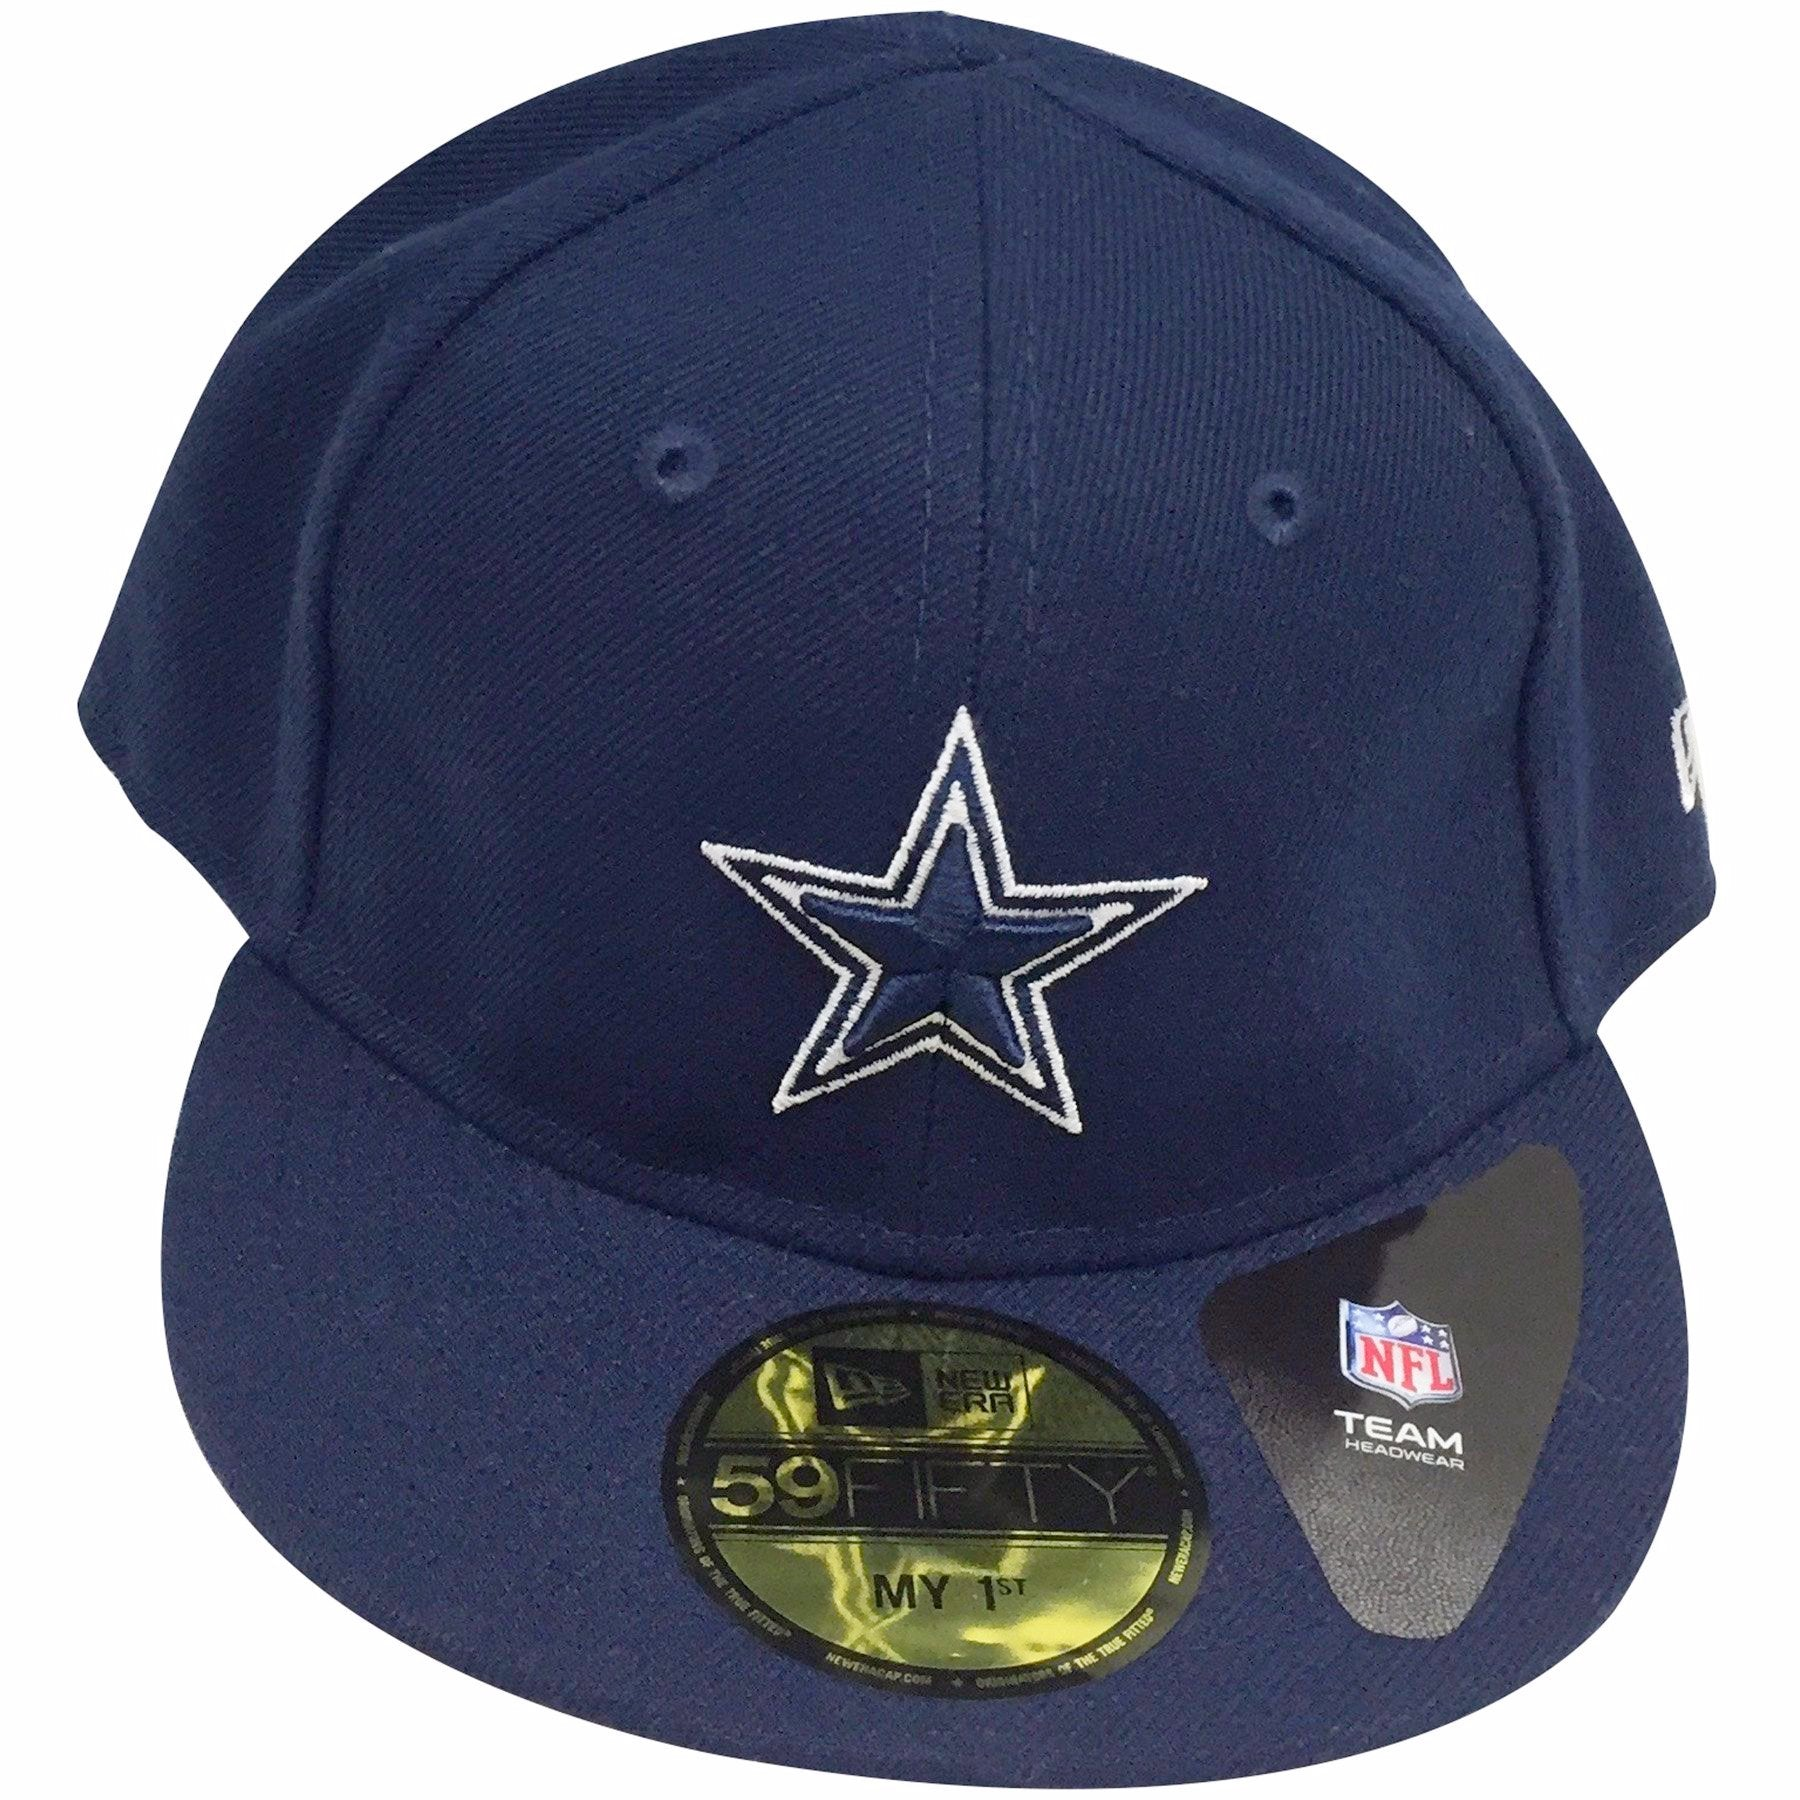 the best attitude b8f03 8dbaa the infant fitted cap dallas cowboys my first fitted is solid navy blue  with a navy